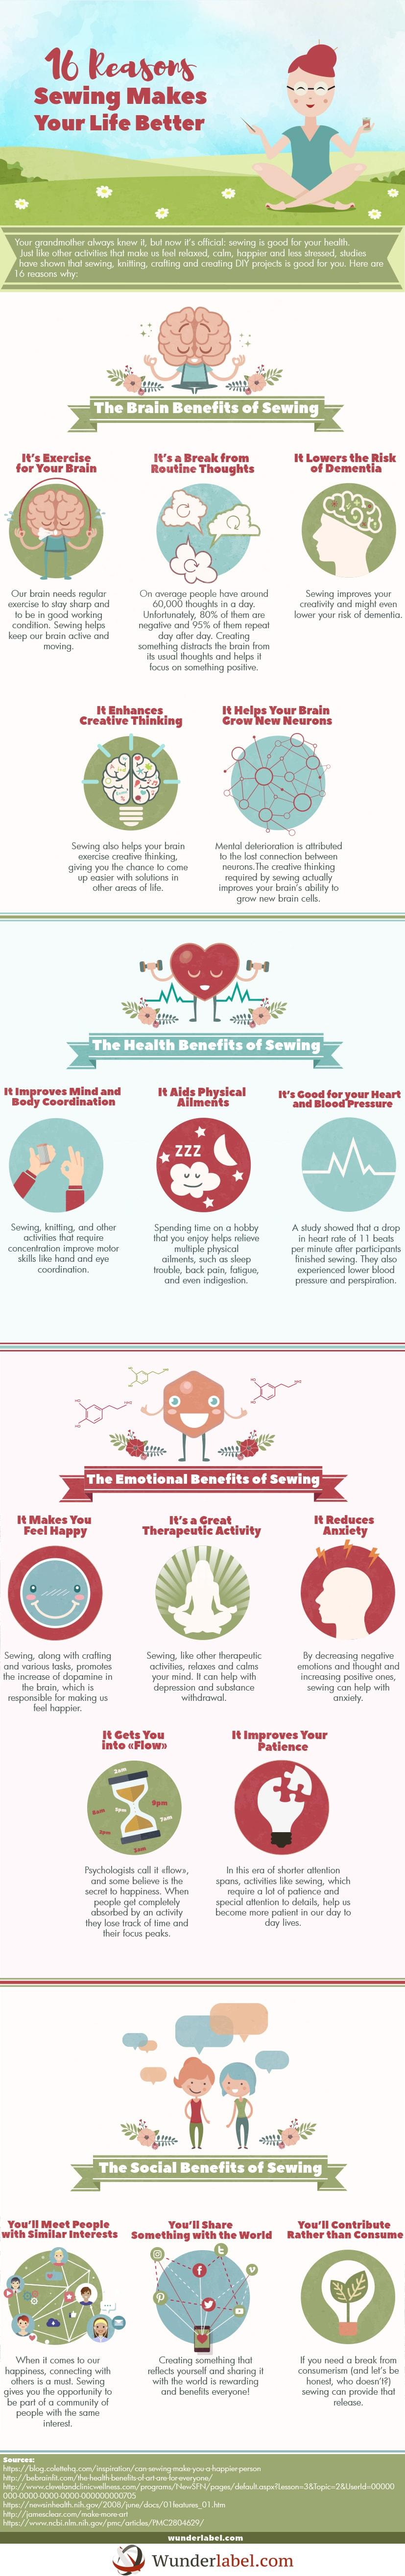 Health Benefits of Sewing Infographic